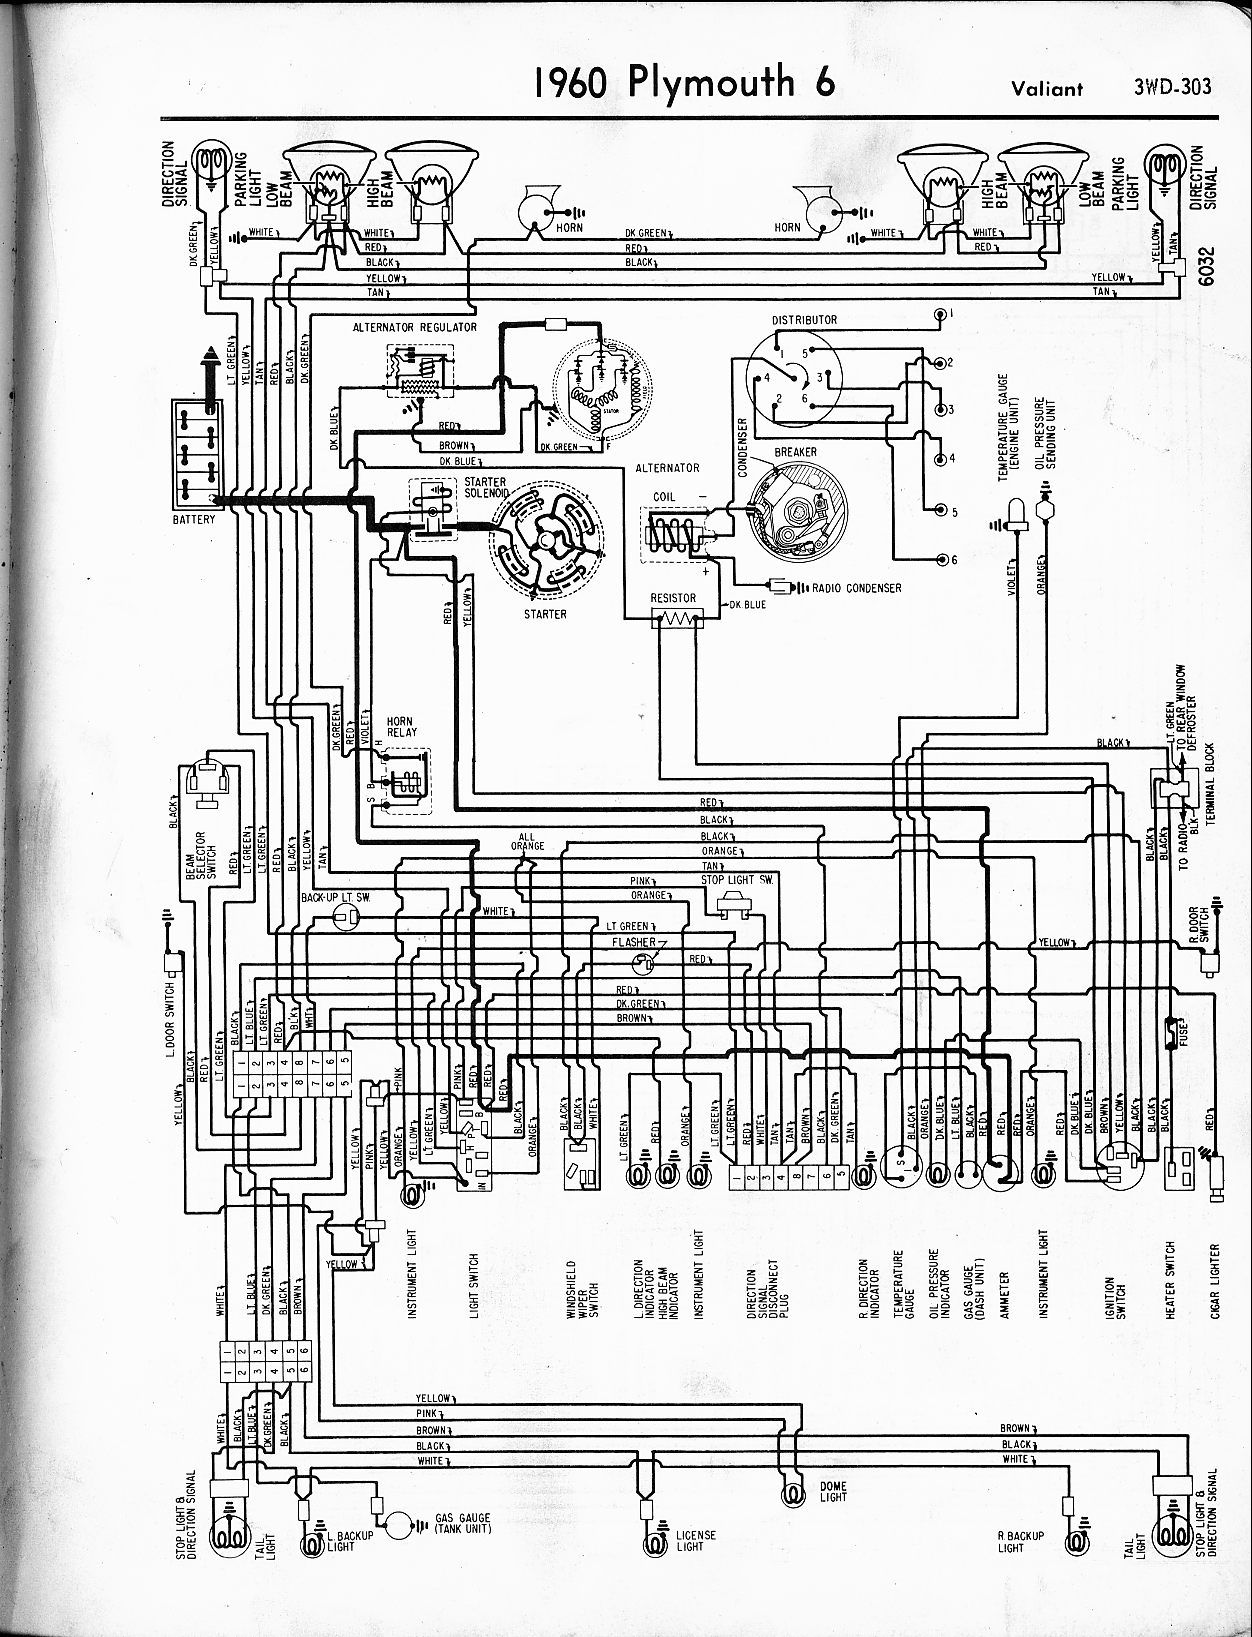 MWire5765 303 1956 1965 plymouth wiring the old car manual project 1954 plymouth belvedere wiring diagram at crackthecode.co